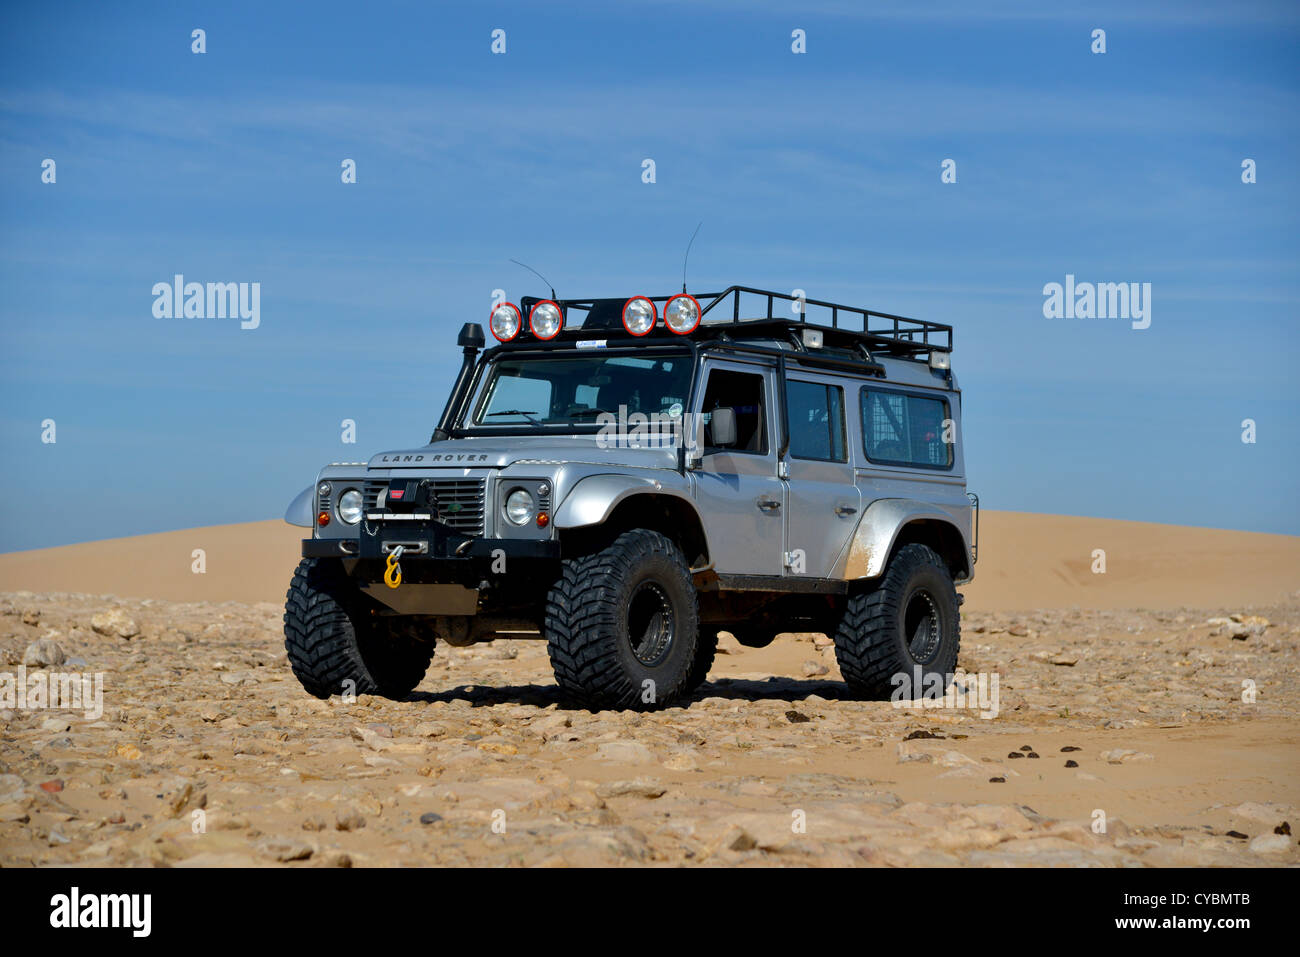 Off road expedition prepared 2012 Land Rover Defender 110 with Stock